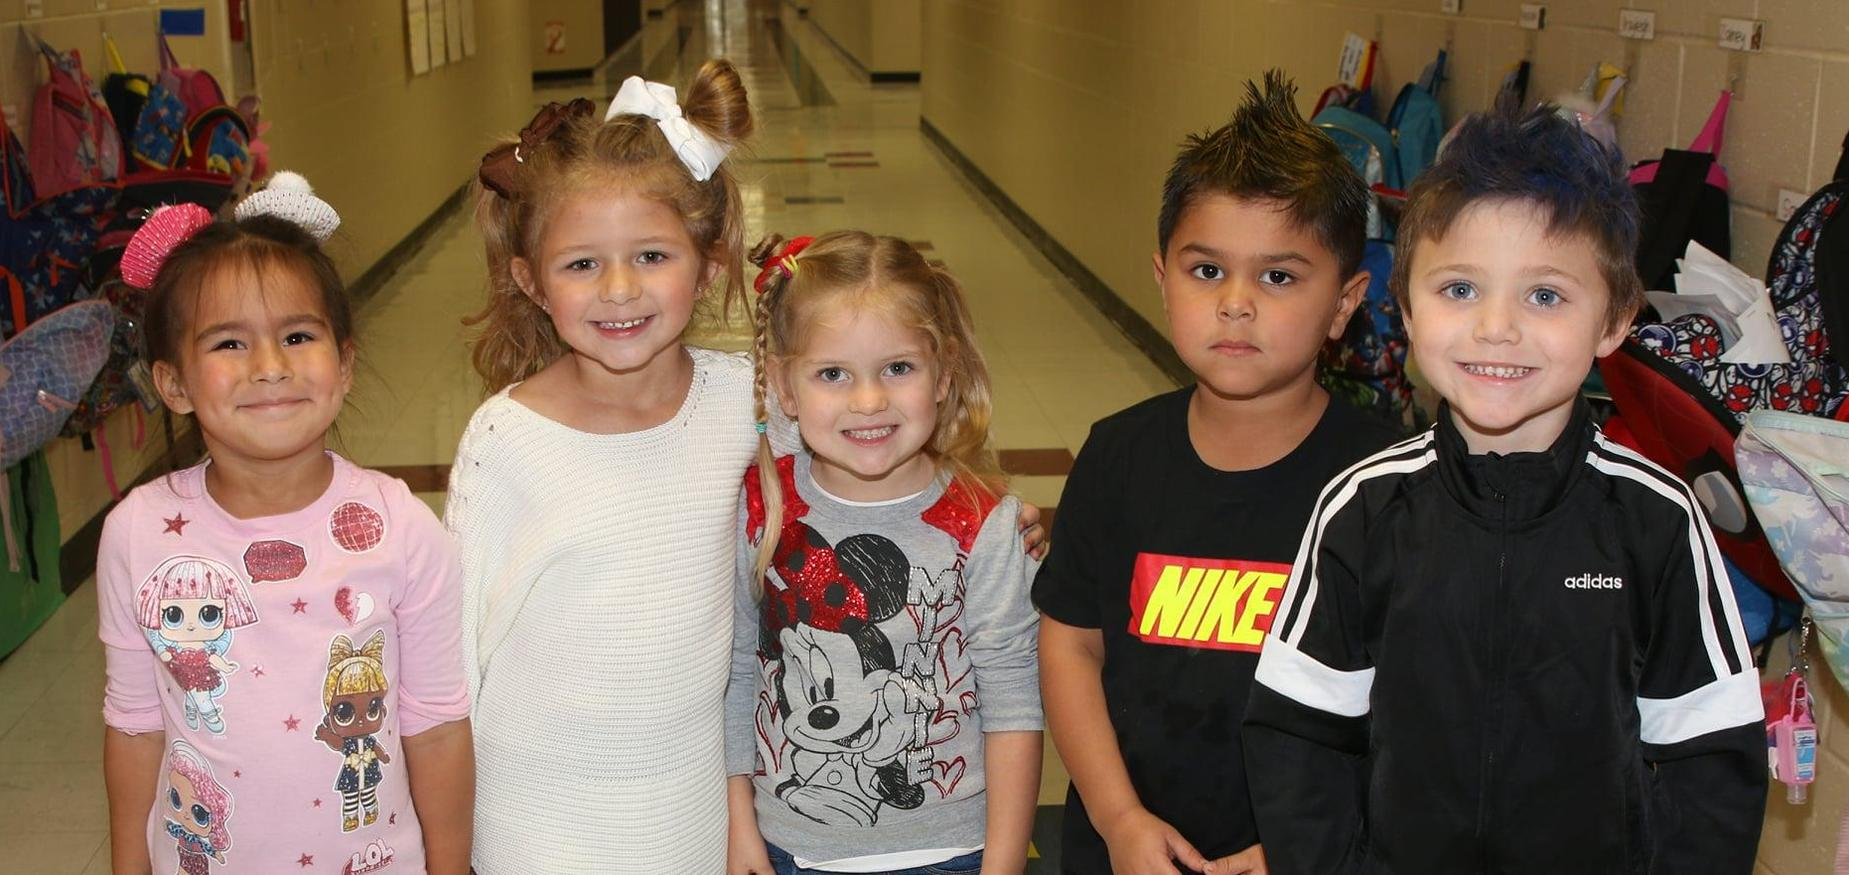 Kids with crazy hair